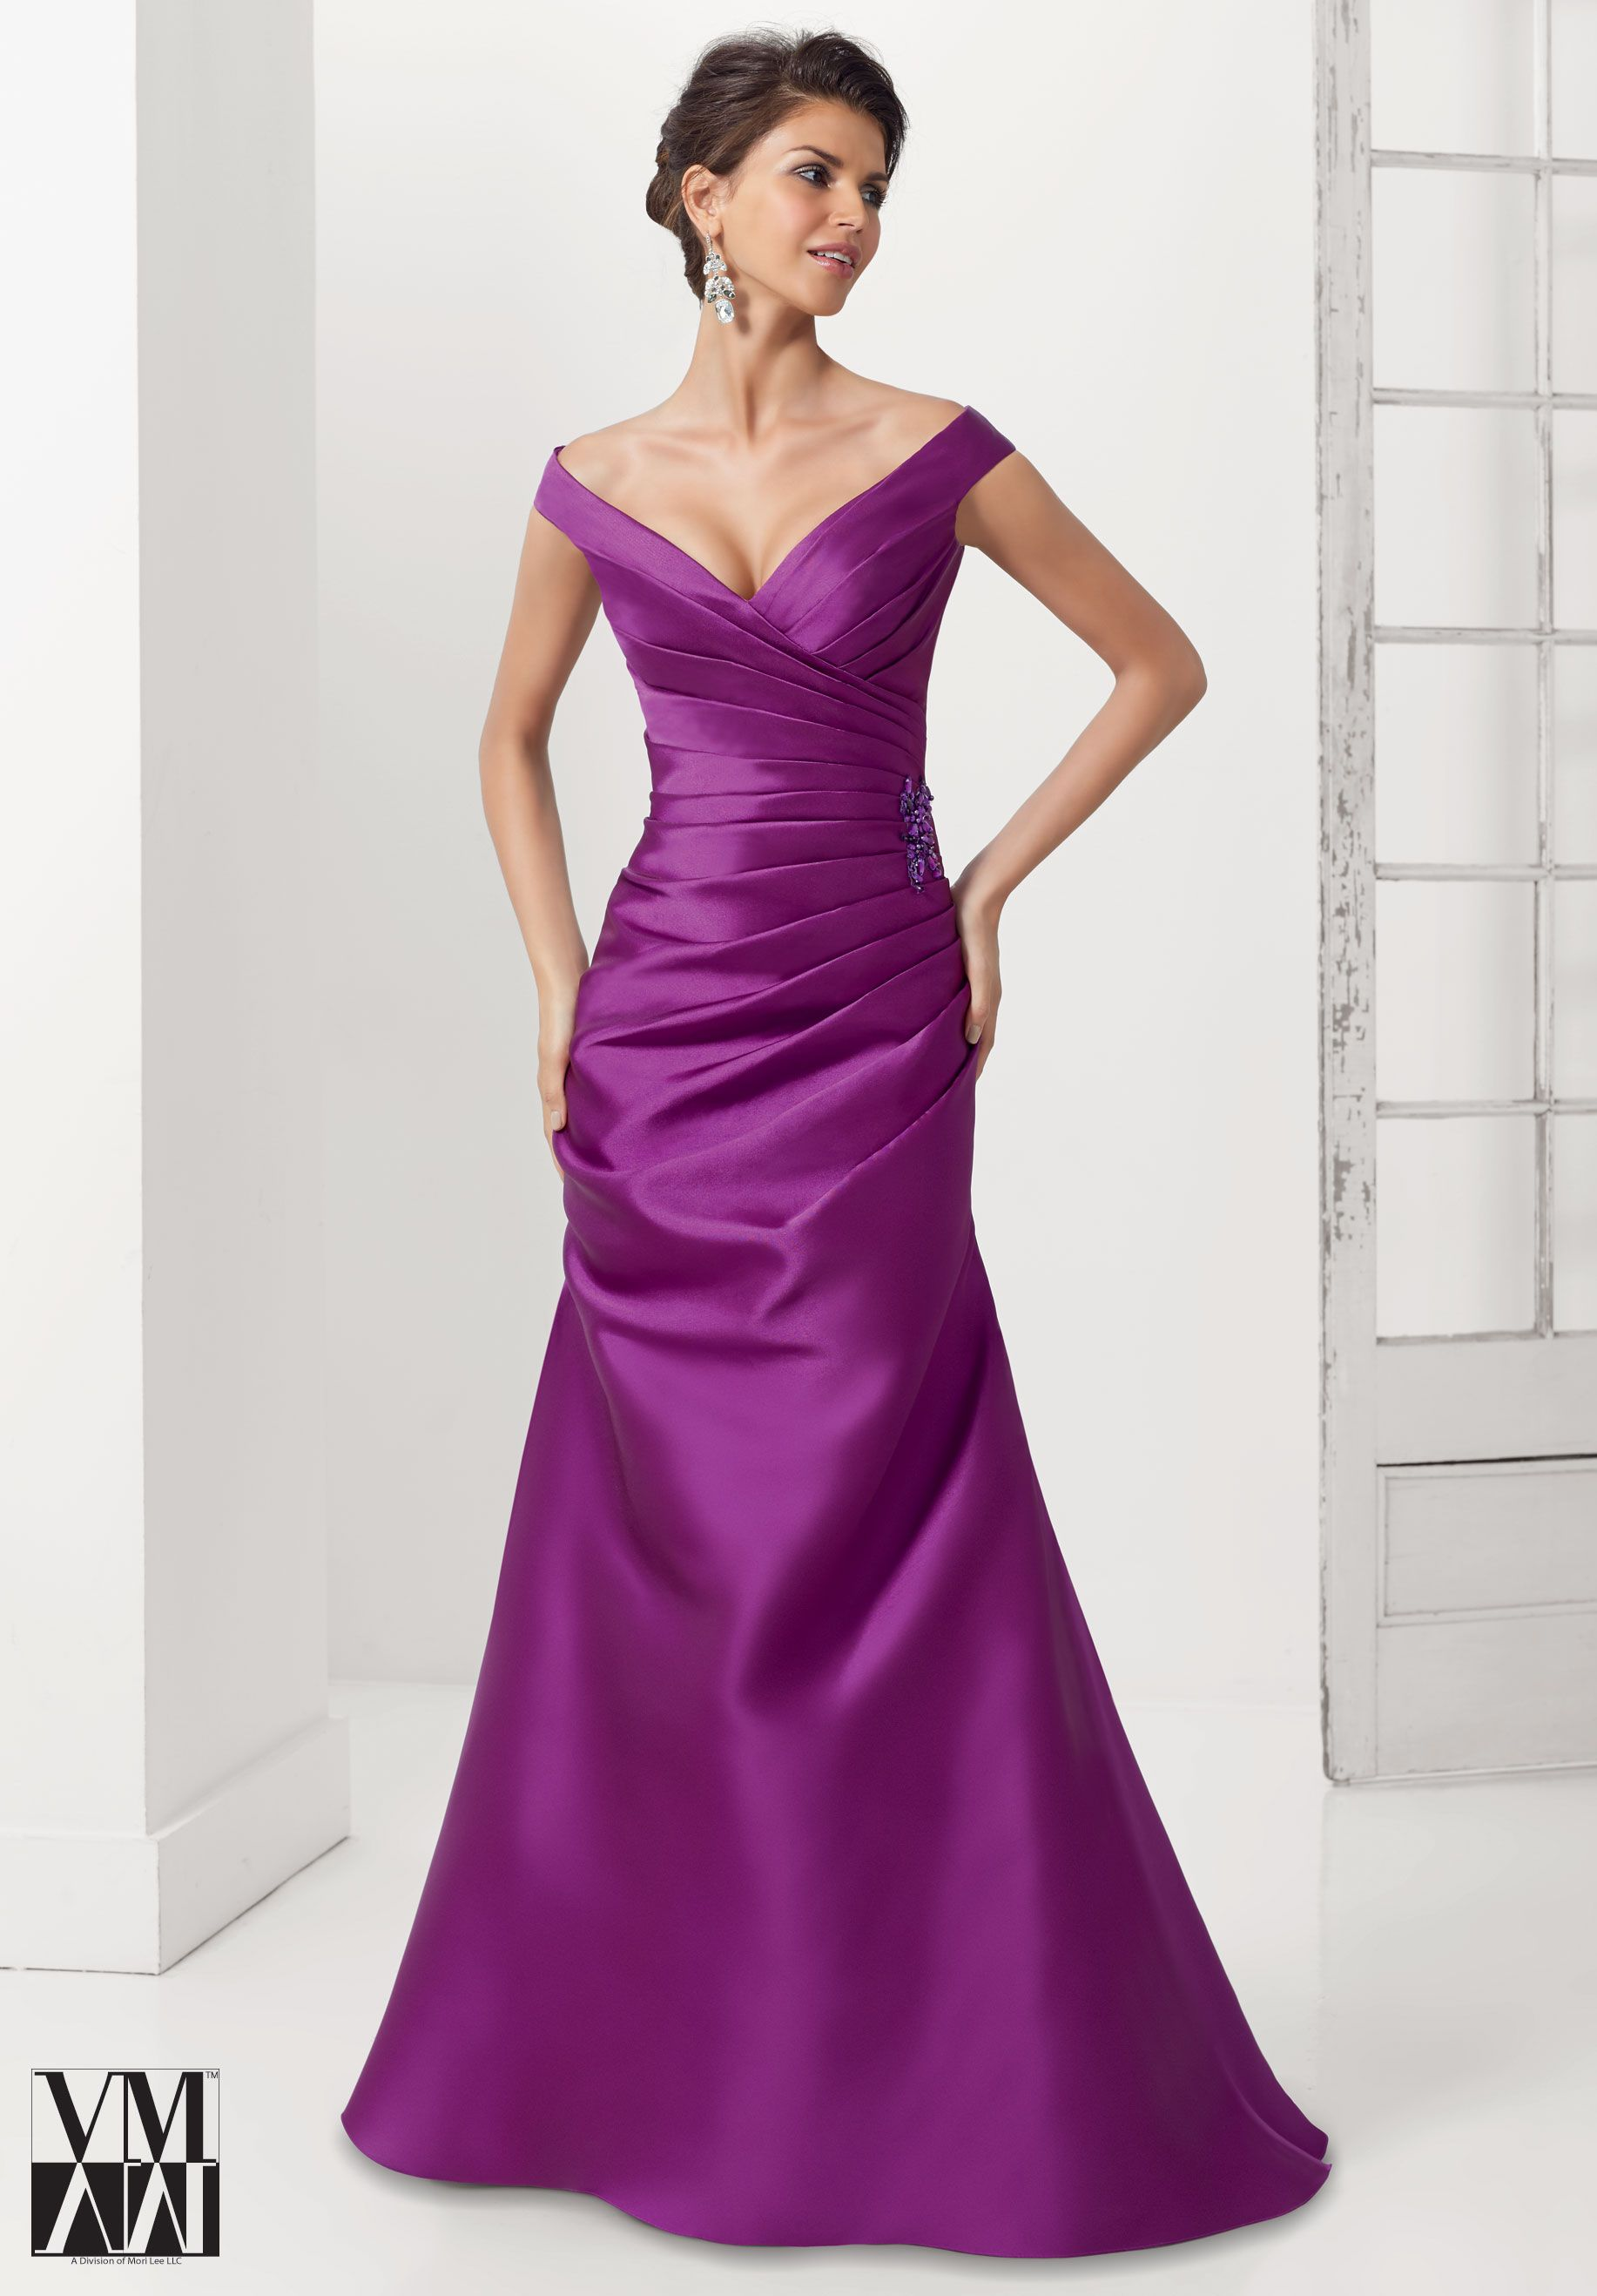 2a3de63ee5 71104 Evening Gowns   Dresses Larissa Satin with Beaded Applique Purple